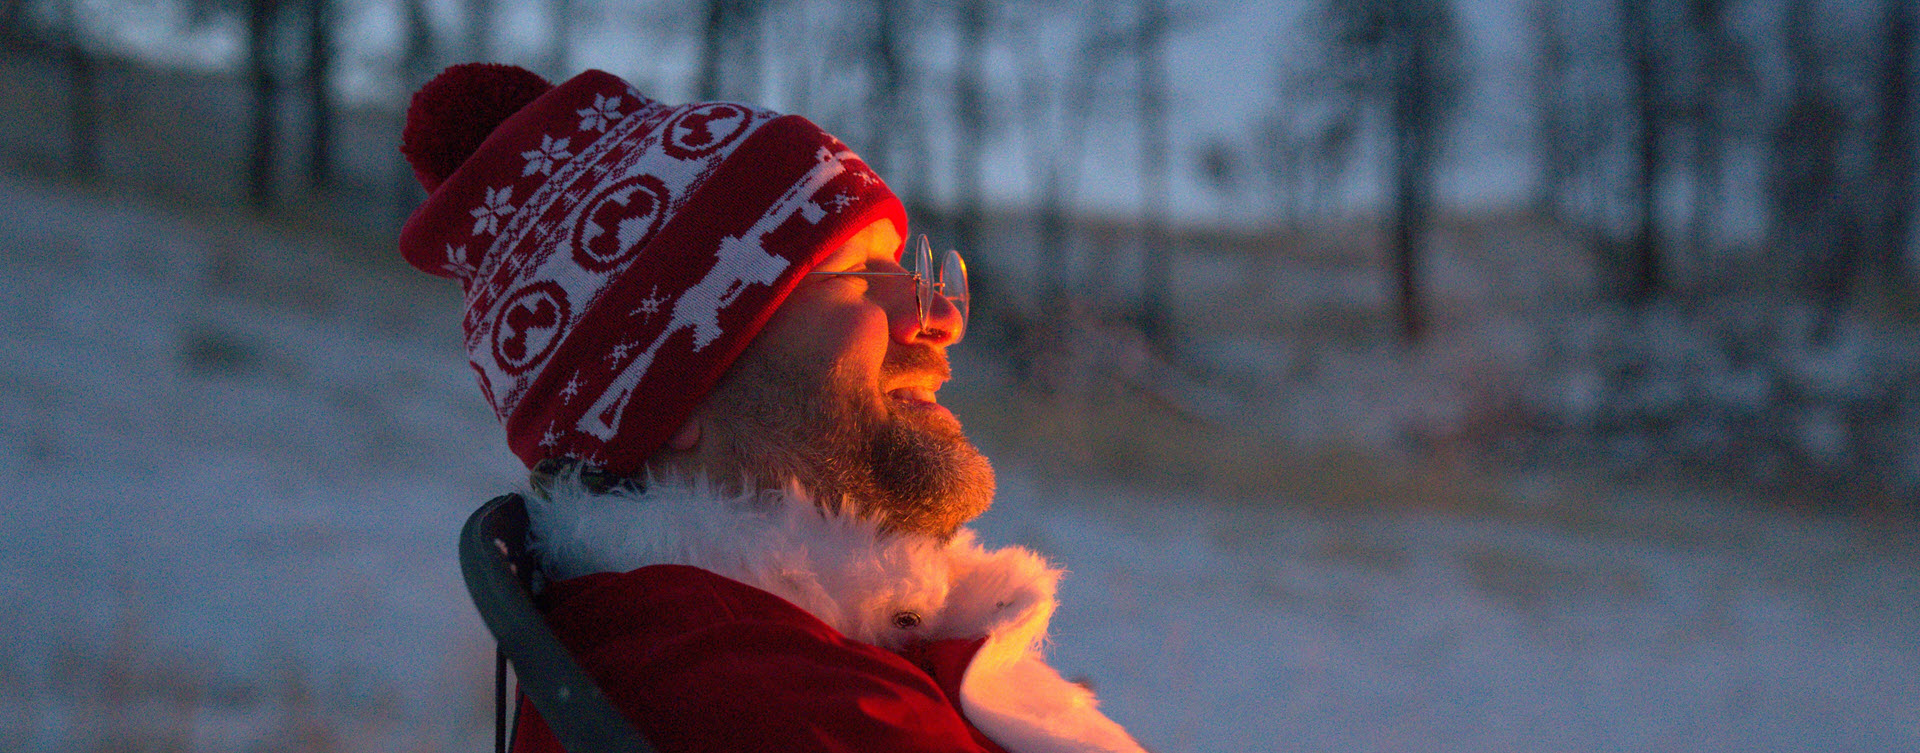 Magpul Ugly Christmas Beanie on man in Santa costume with glasses sitting outdoors in the snow by a fire